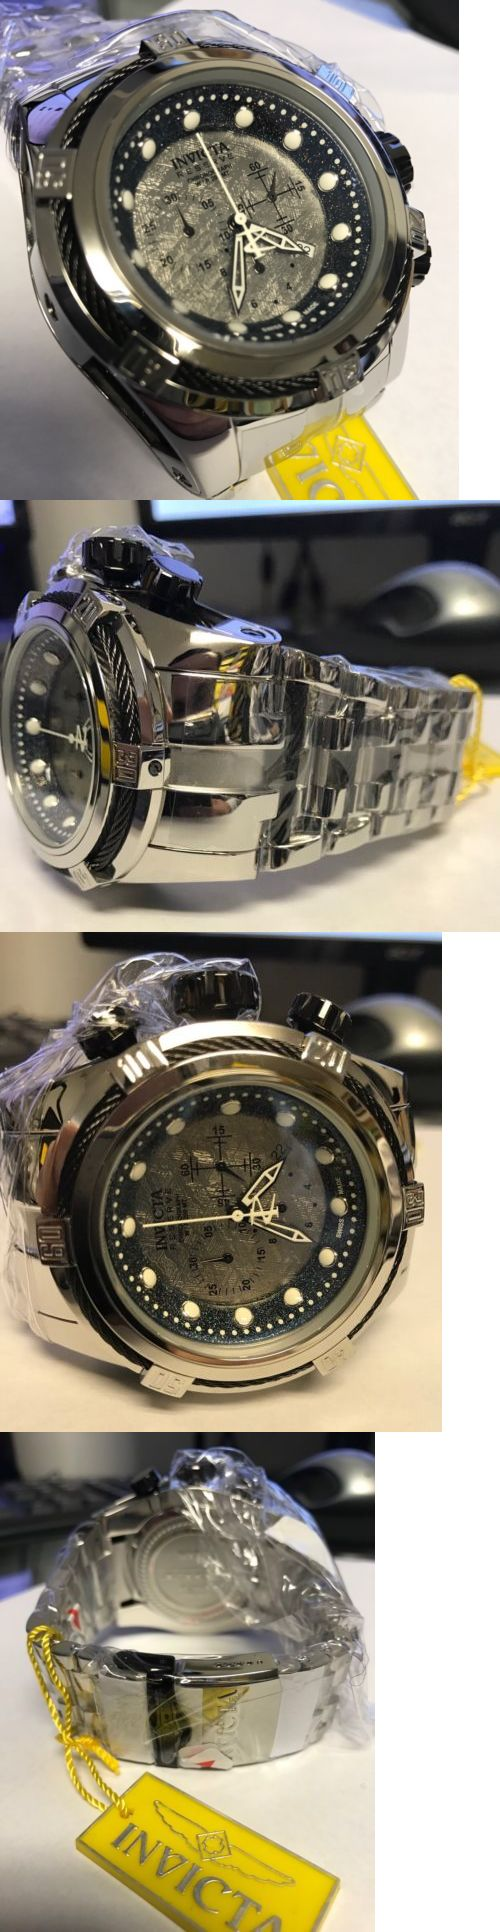 Other Jewelry and Watches 98863: New Invicta 19732 Meteorite Dial Invicta Swiss Made Chronograph Watch BUY IT NOW ONLY: $899.99